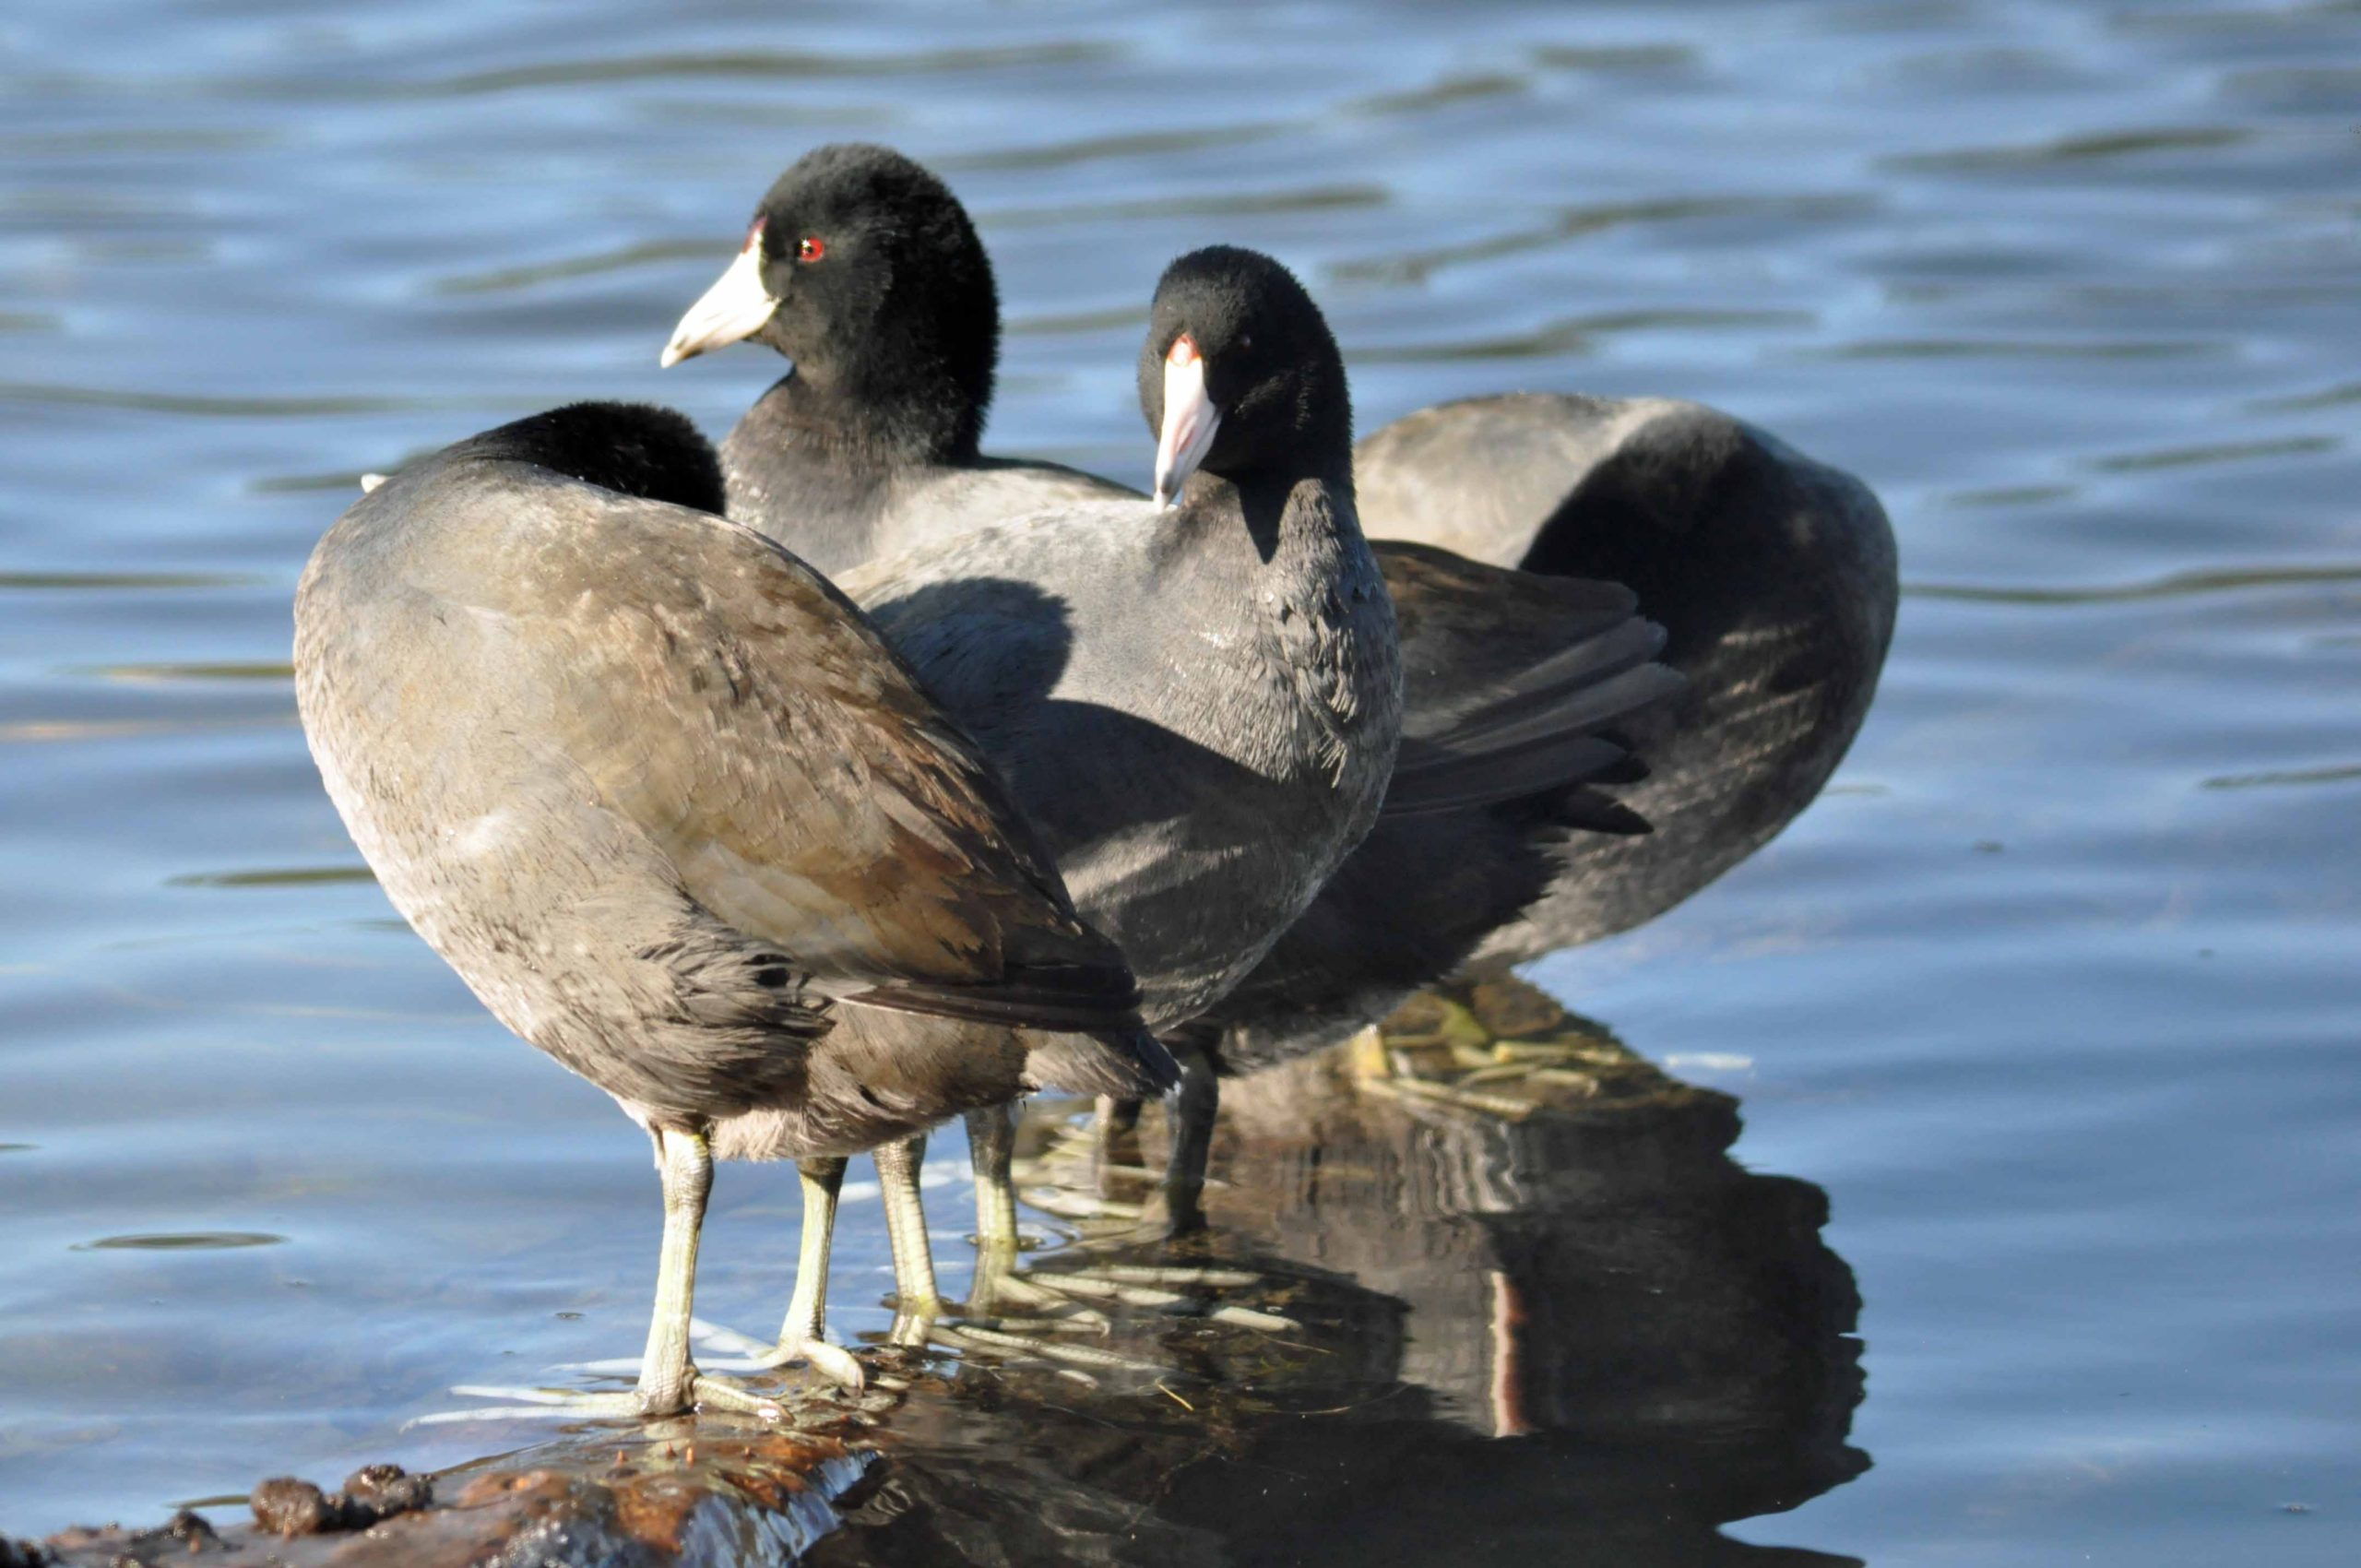 Red eyed coots up close